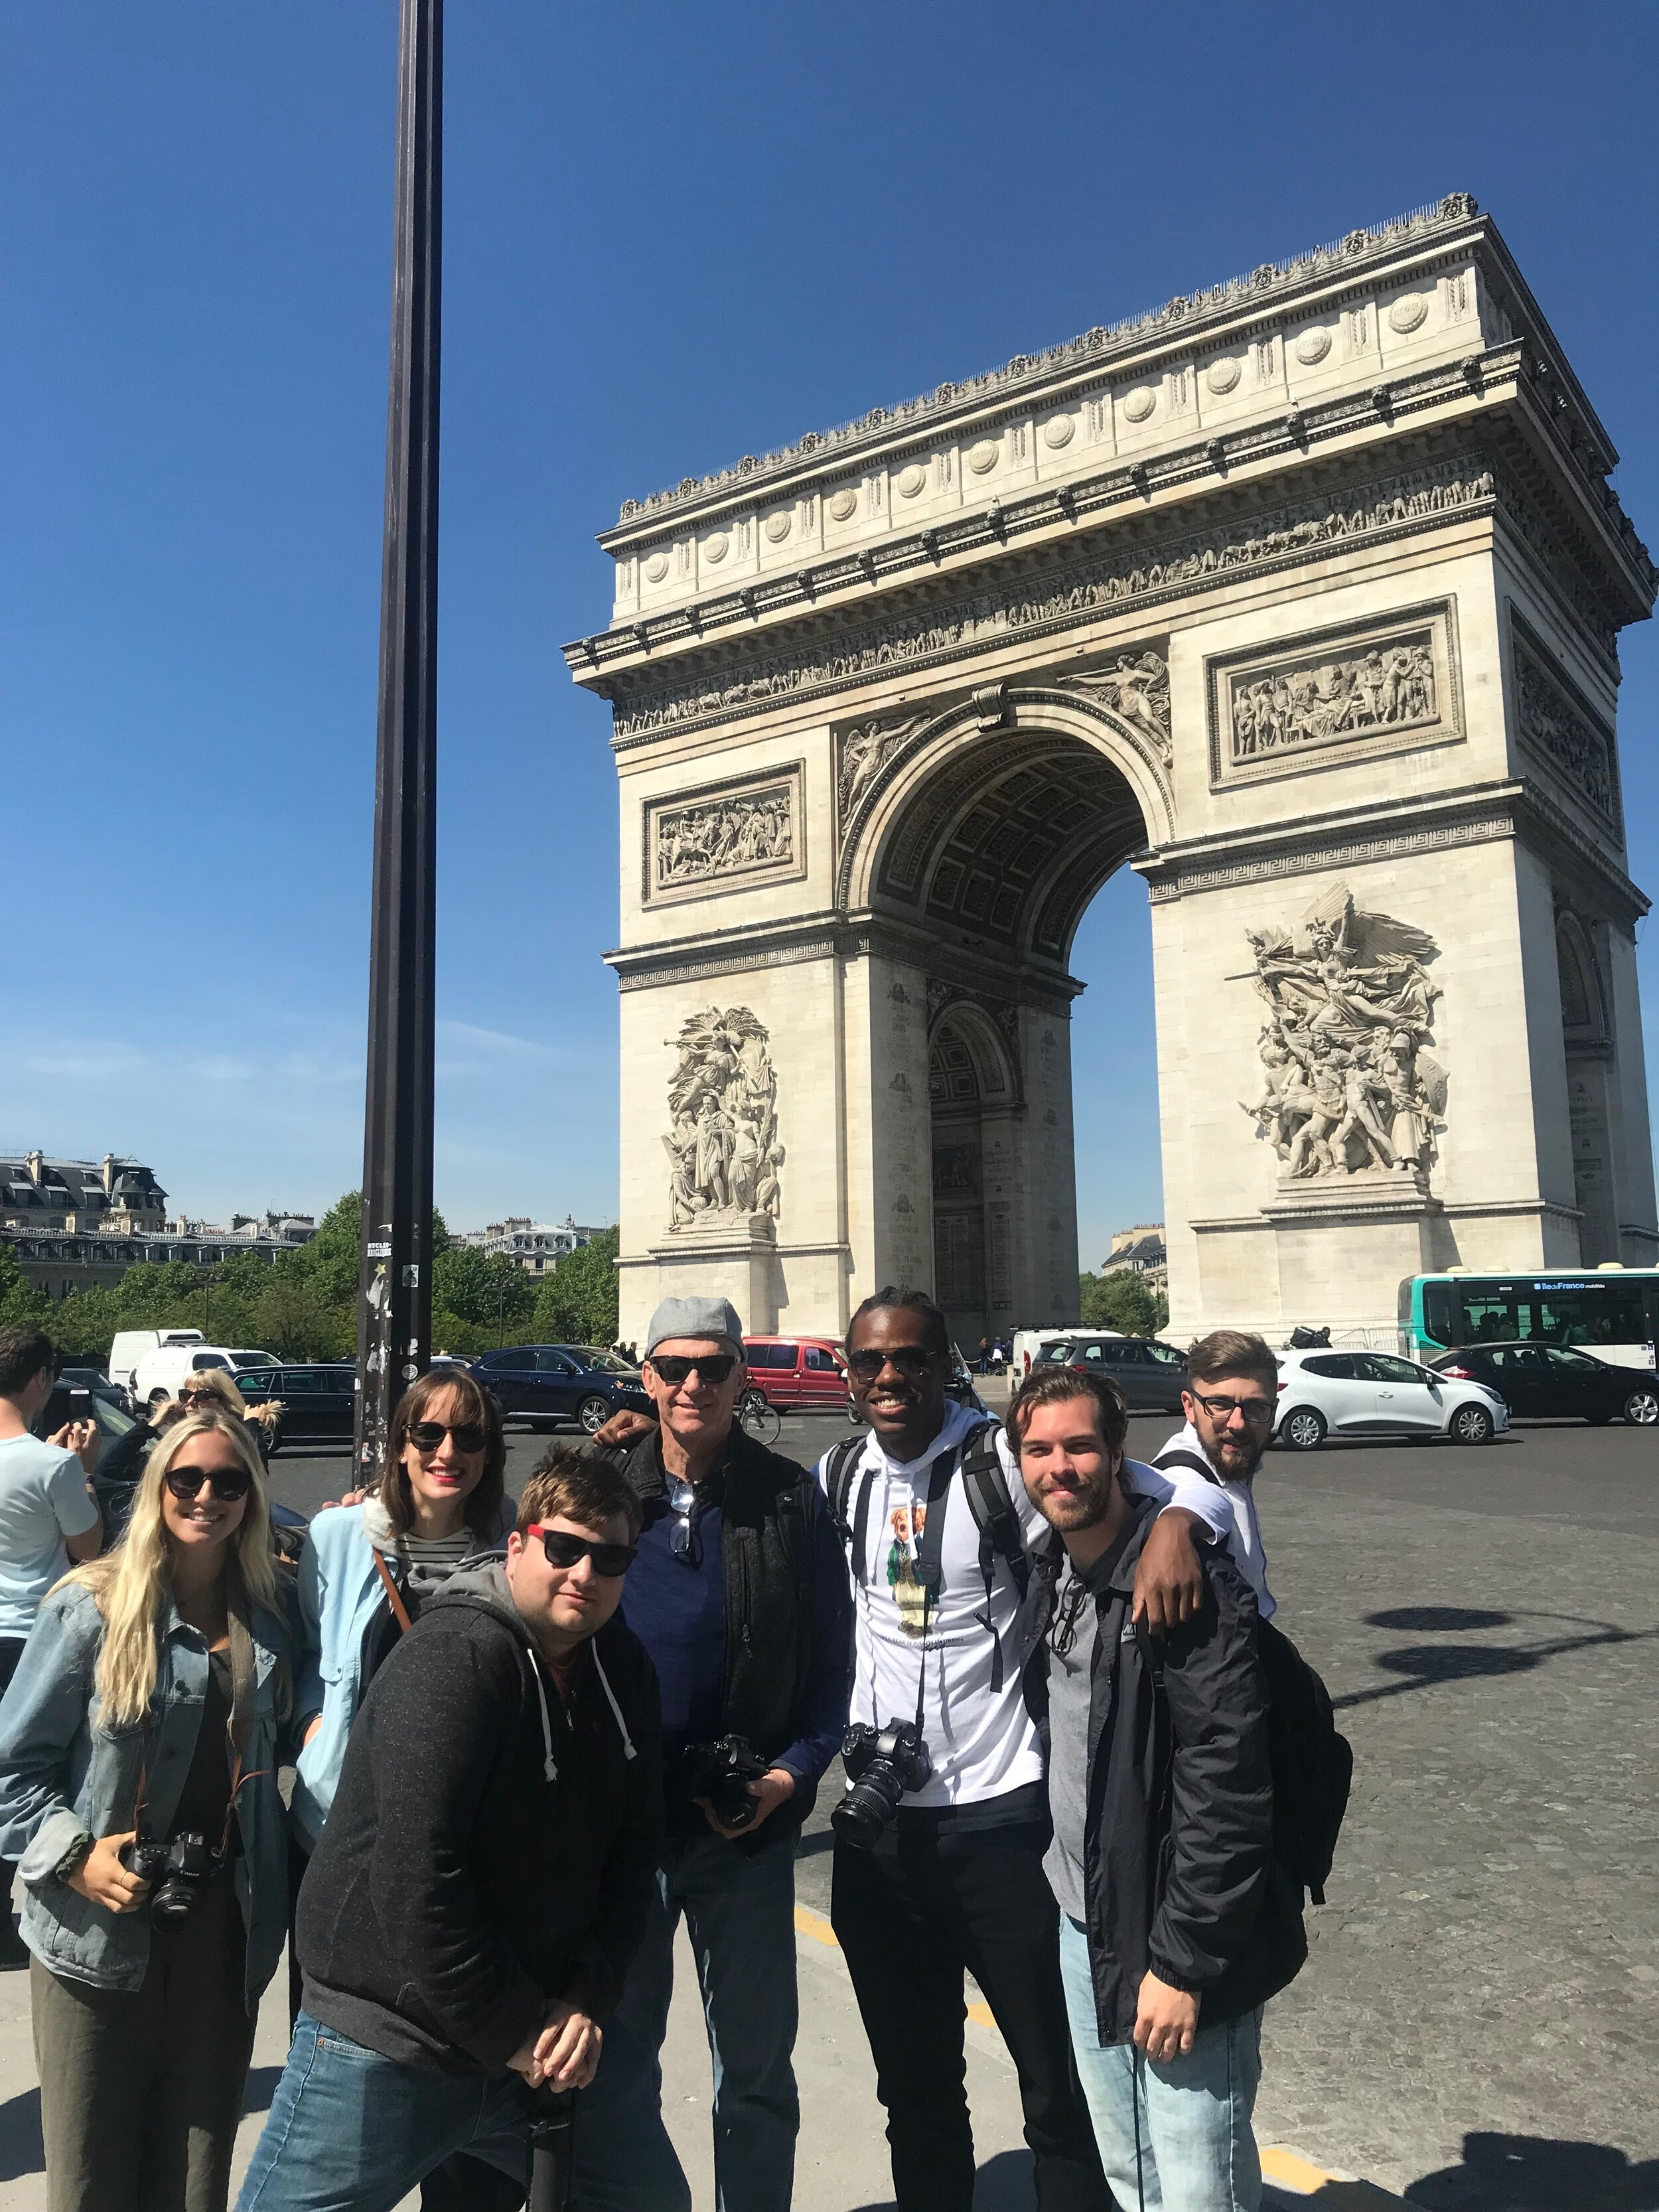 The COM Media gang poses for a photo in front of the Arc de Triomphe.